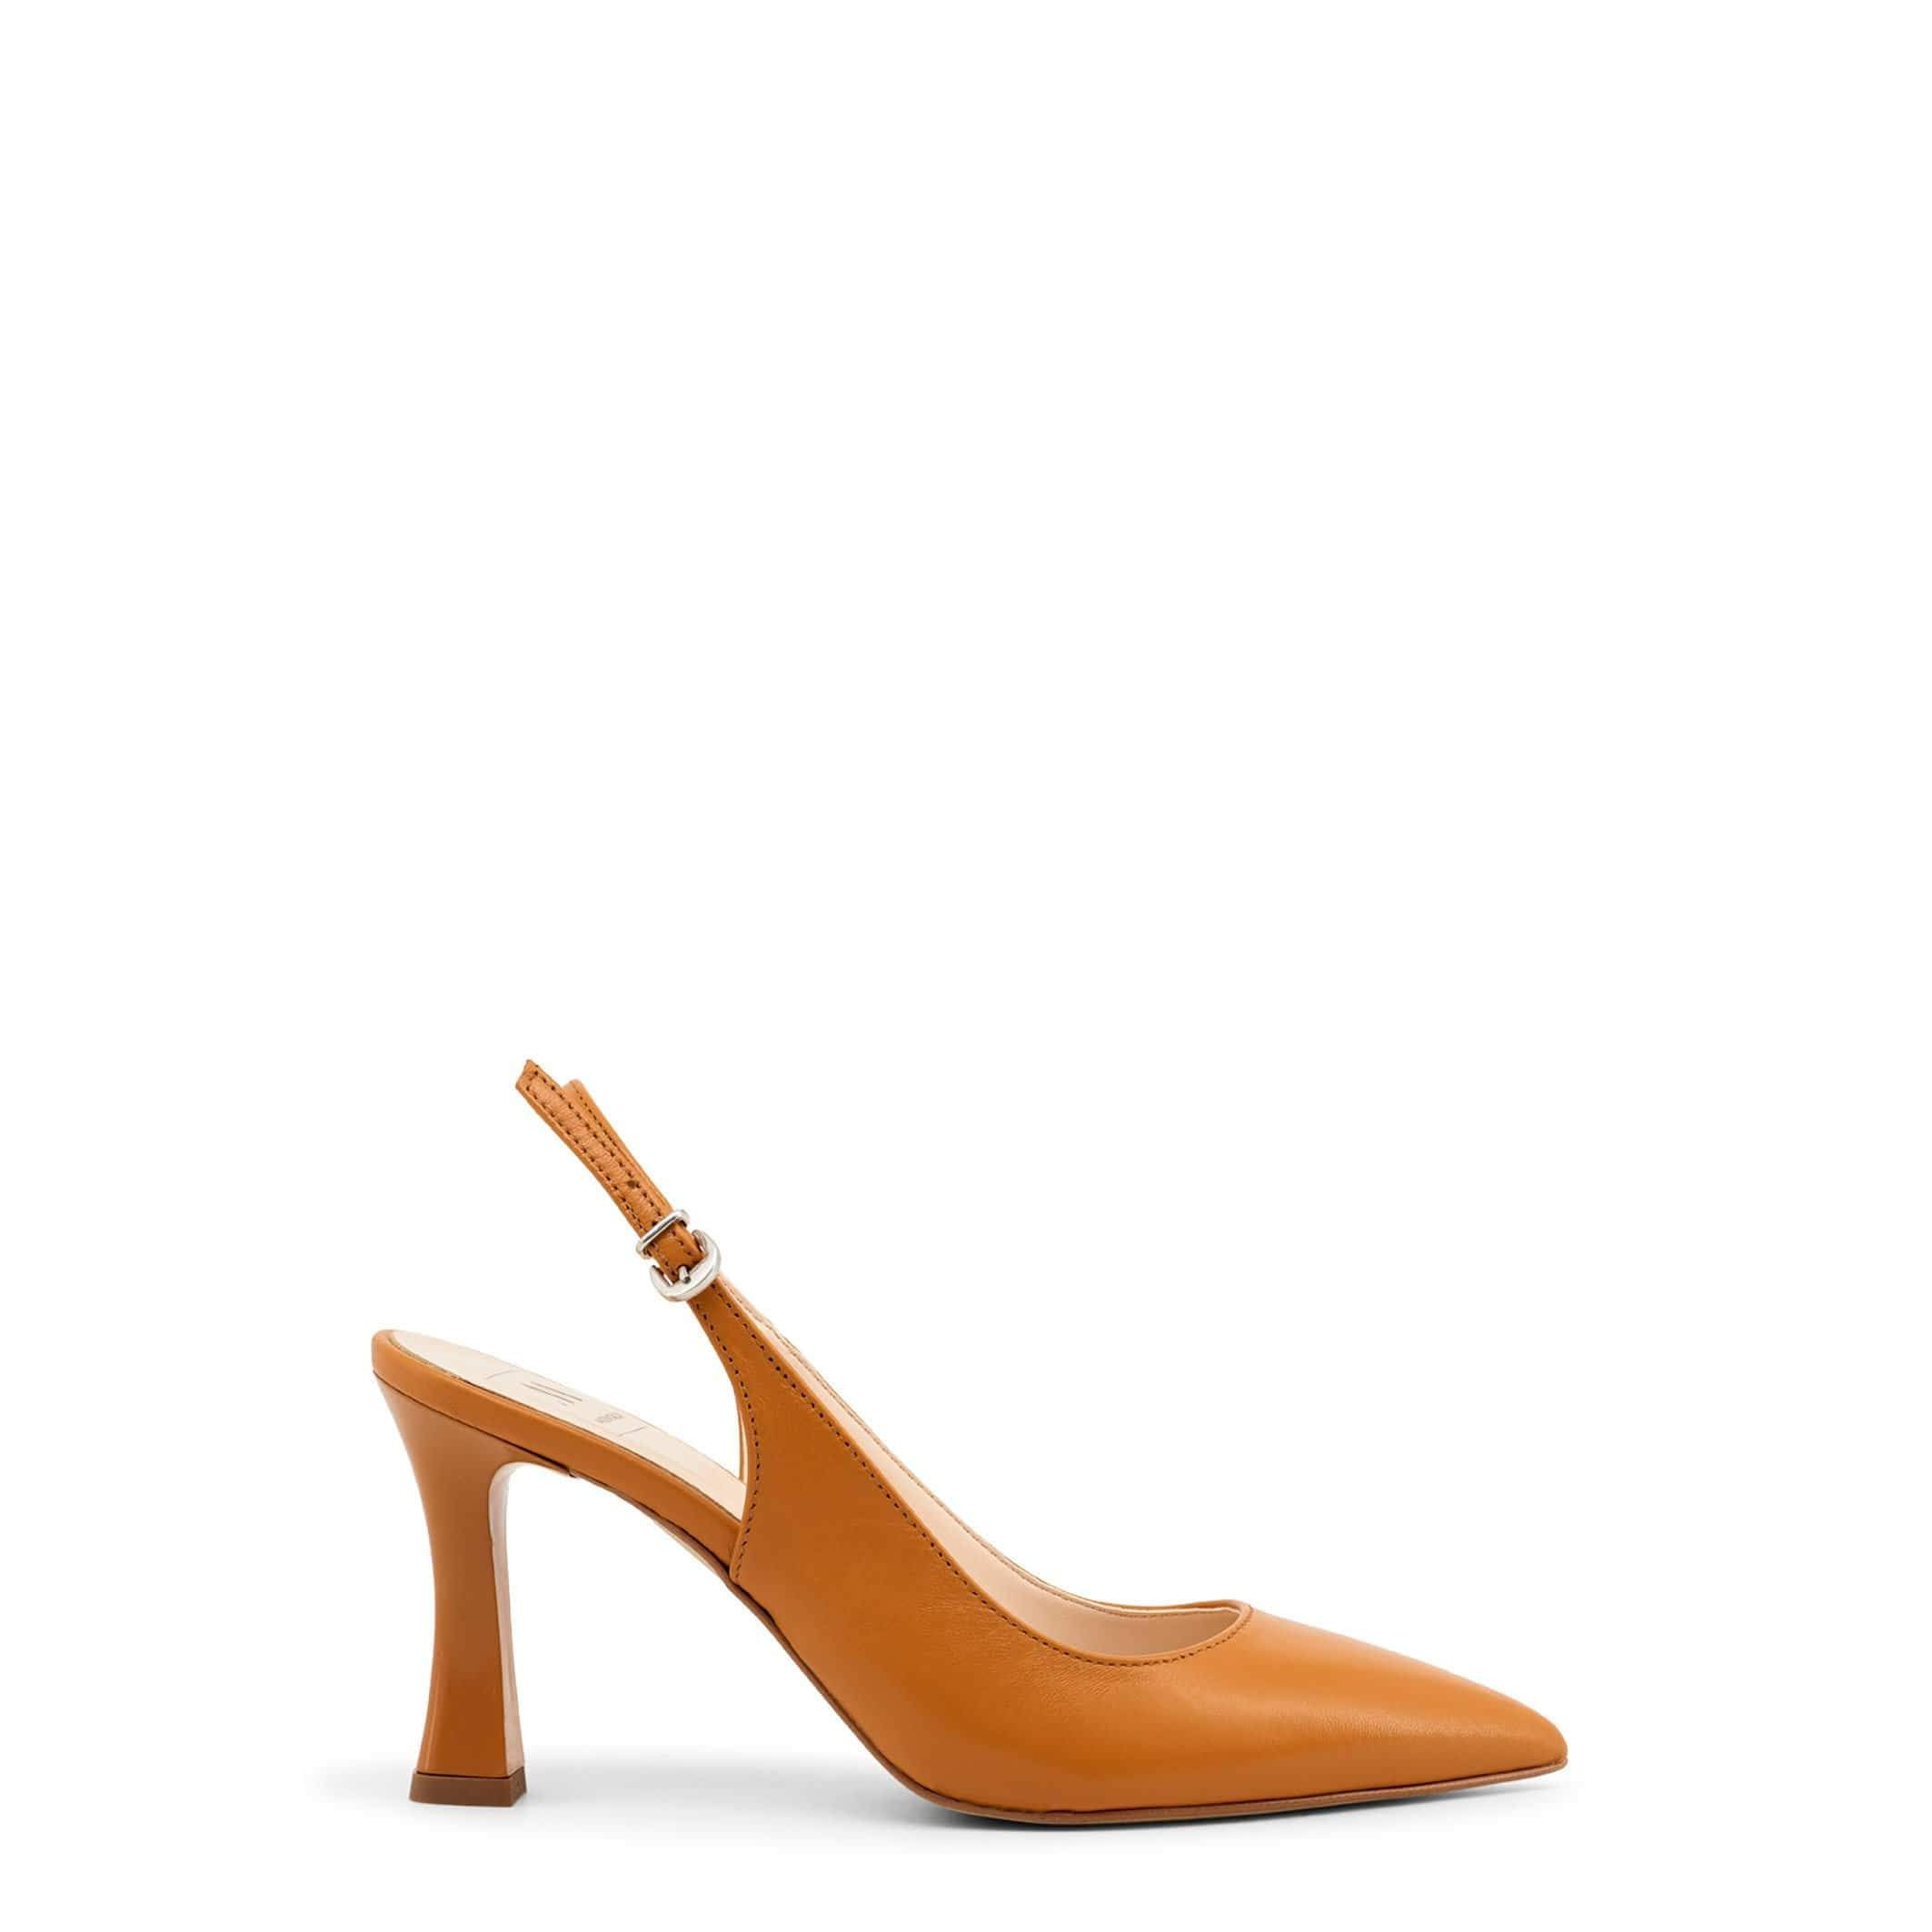 Made in Italia Shoes Pumps & Heels brown / 36 Made in Italia - MAGNOLIA